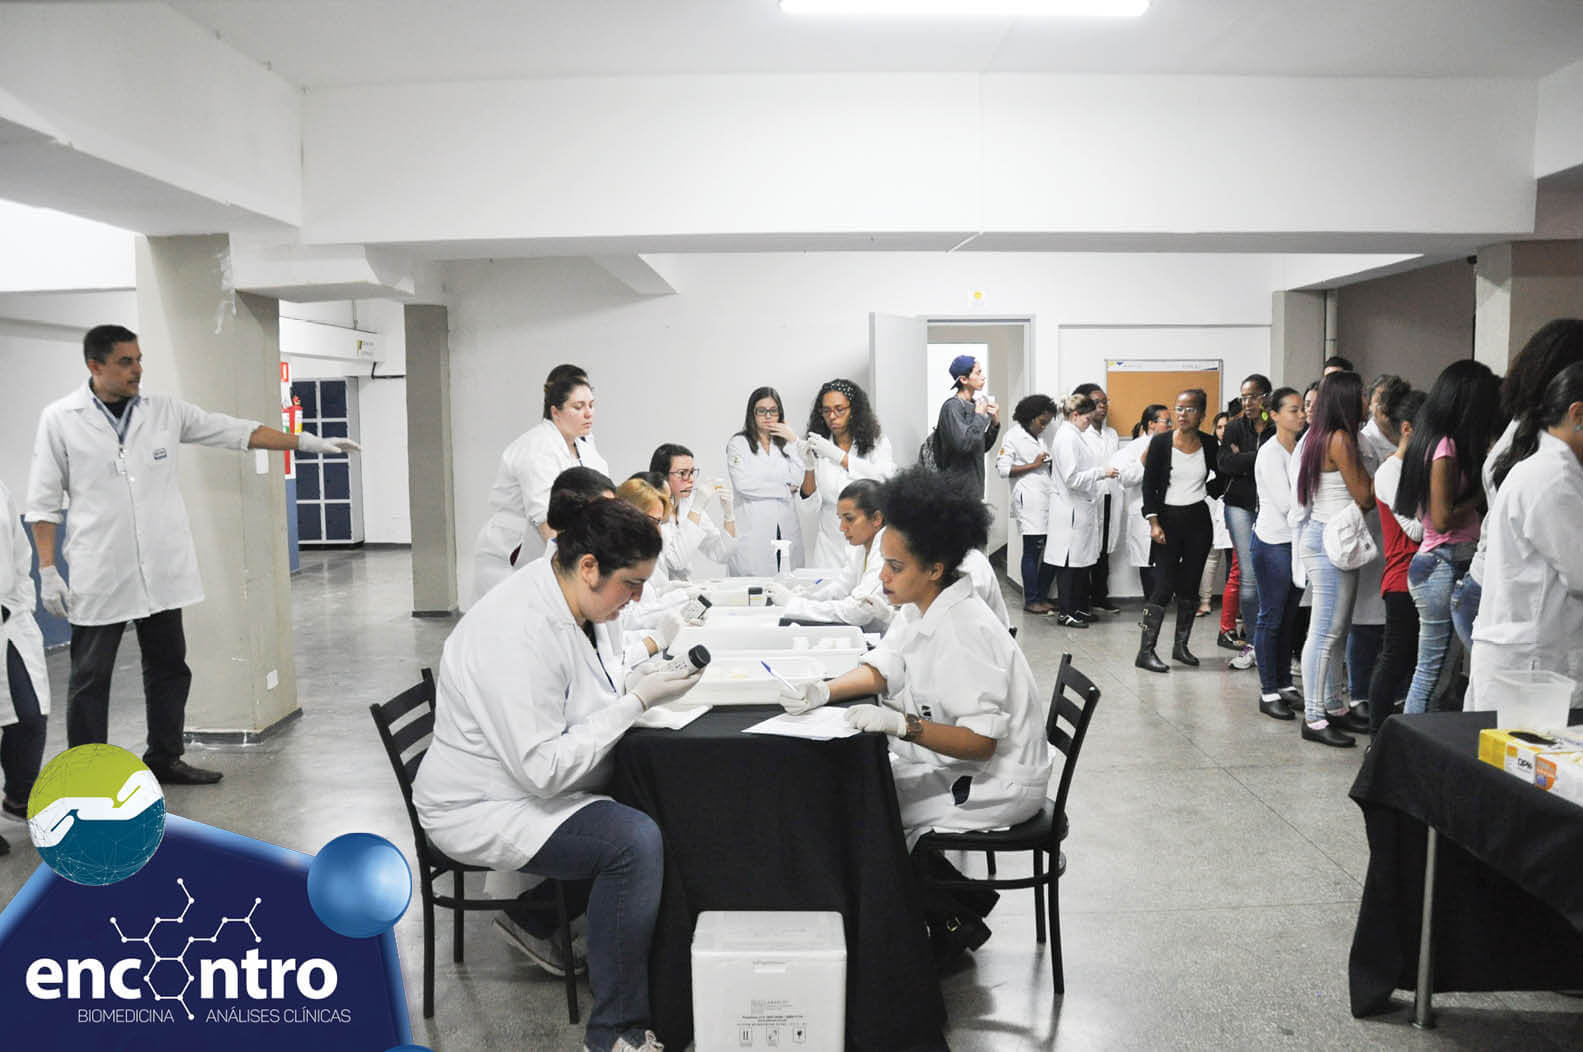 encontro-biomedicina-analises-clinicas